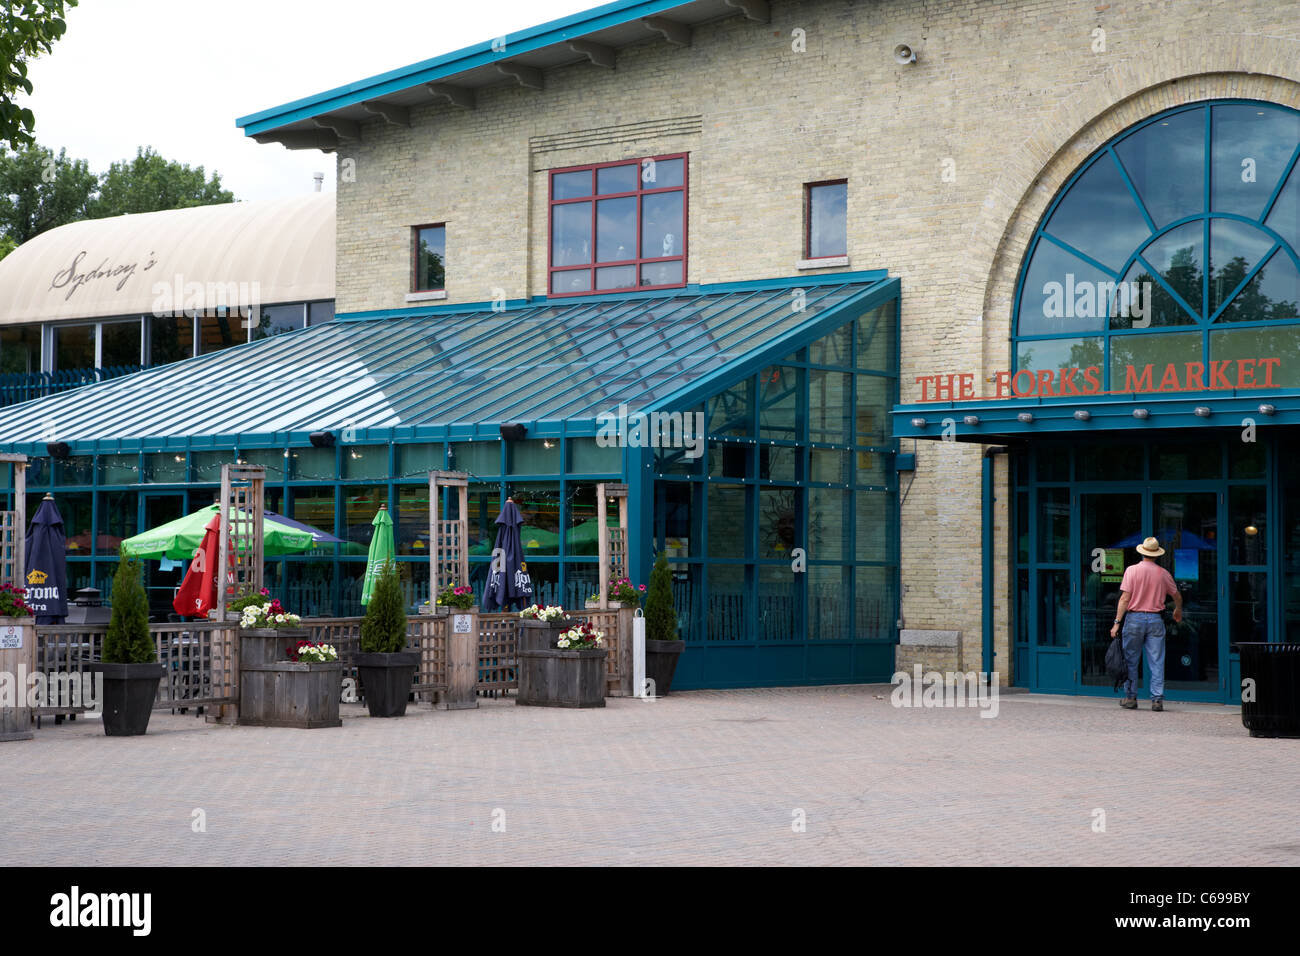 the forks market Winnipeg Manitoba Canada - Stock Image